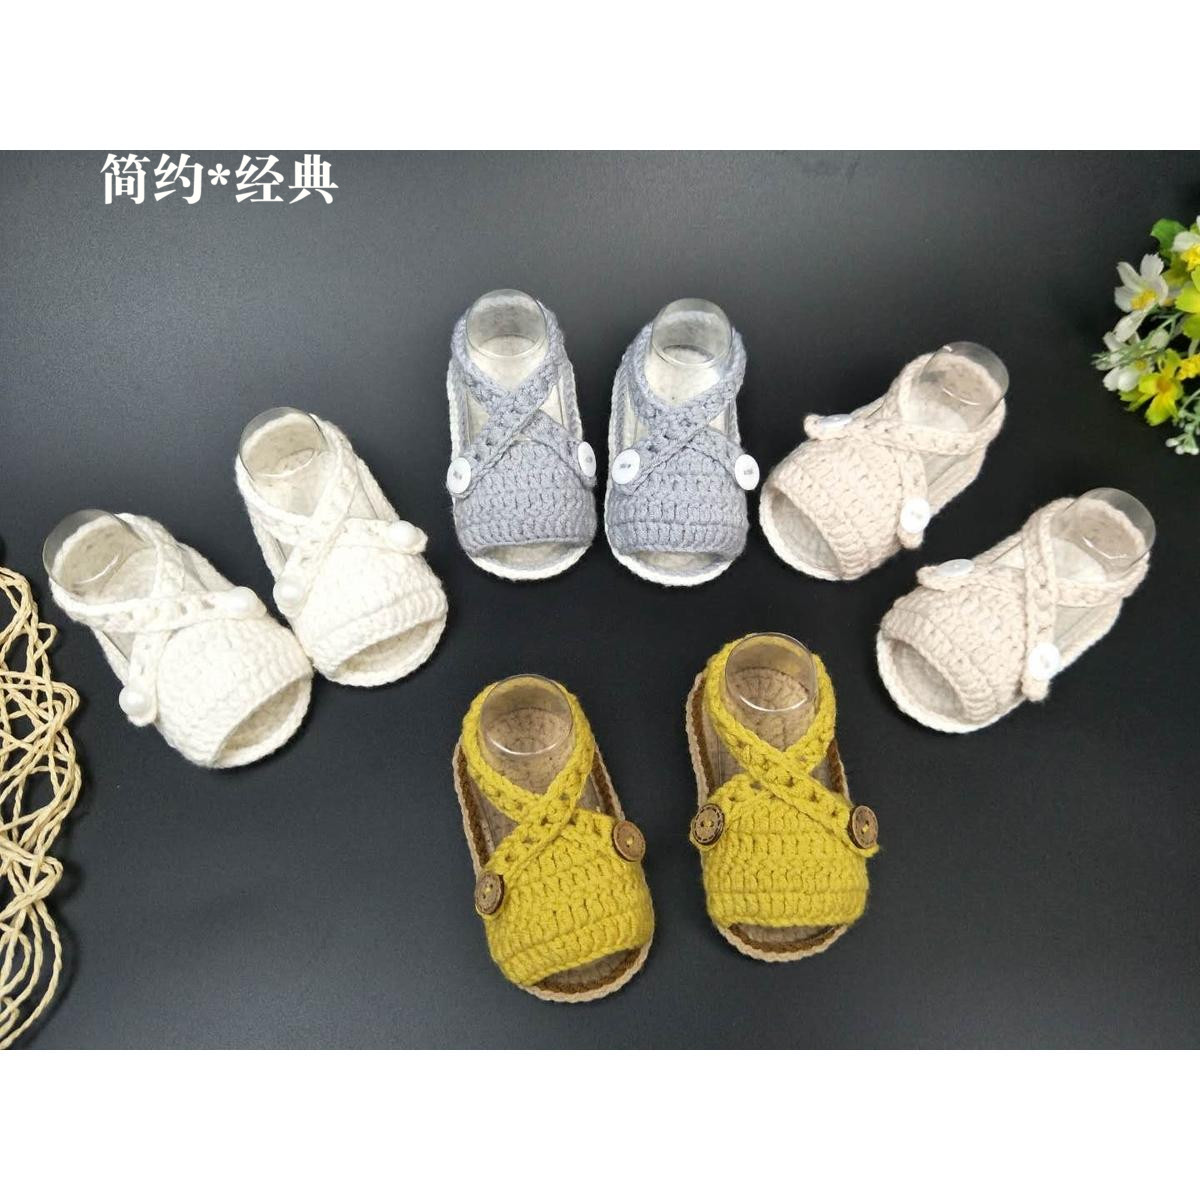 Hand Knitted Baby Wool Sandals, 0-1 Year Olds, Buckles, Soft Floor Shoes, Newborn Floor Socks Summer.